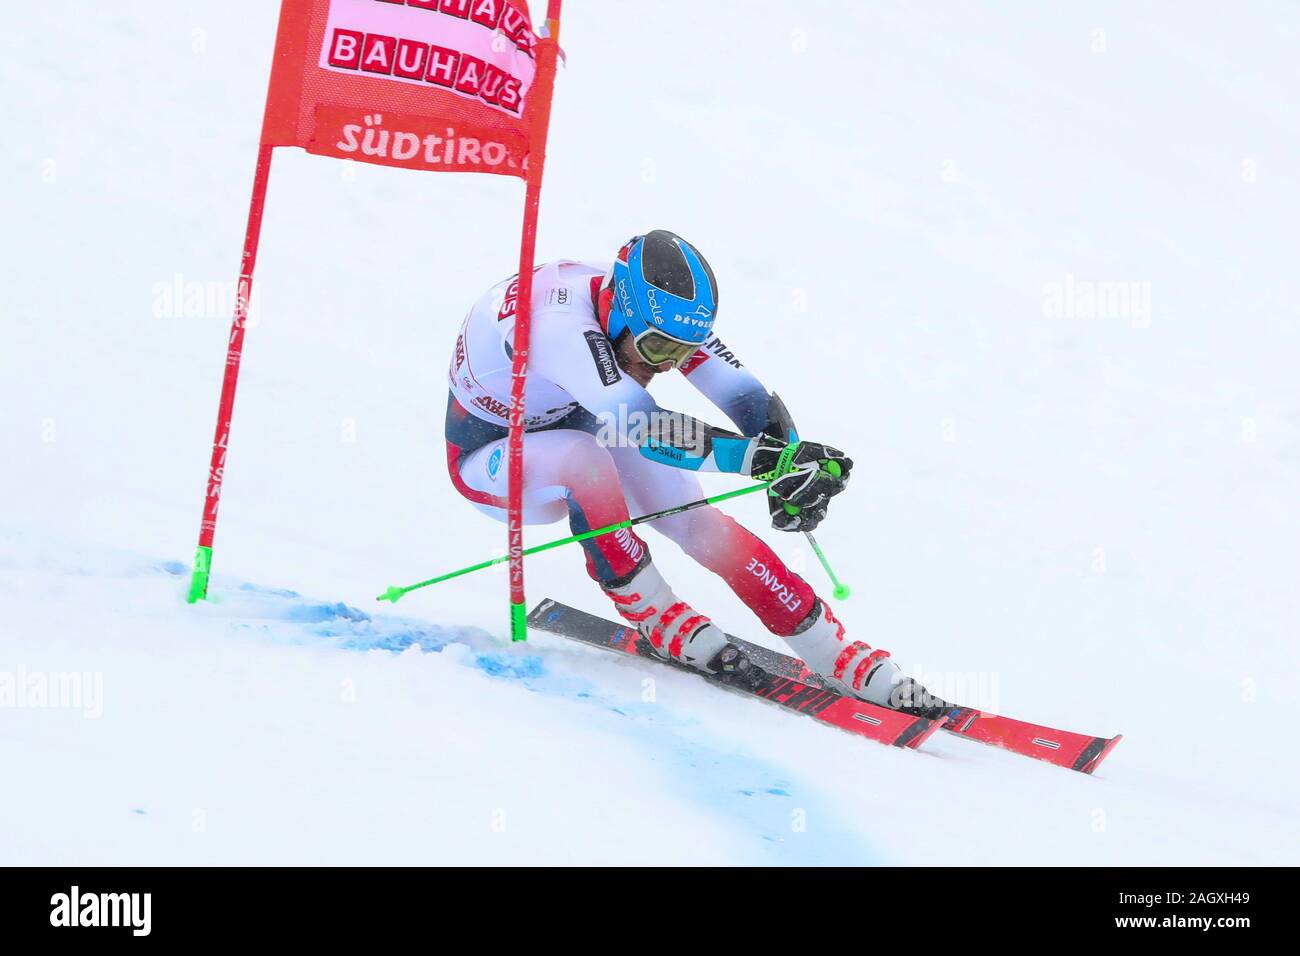 Alta Badia, Italy. 22nd Dec, 2019. sarrazin cyprien (fra) second classifiedduring FIS SKI WORLD CUP 2019 - Giant Slalom Men, Ski in Alta Badia, Italy, December 22 2019 - LPS/Sergio Bisi Credit: Sergio Bisi/LPS/ZUMA Wire/Alamy Live News Stock Photo